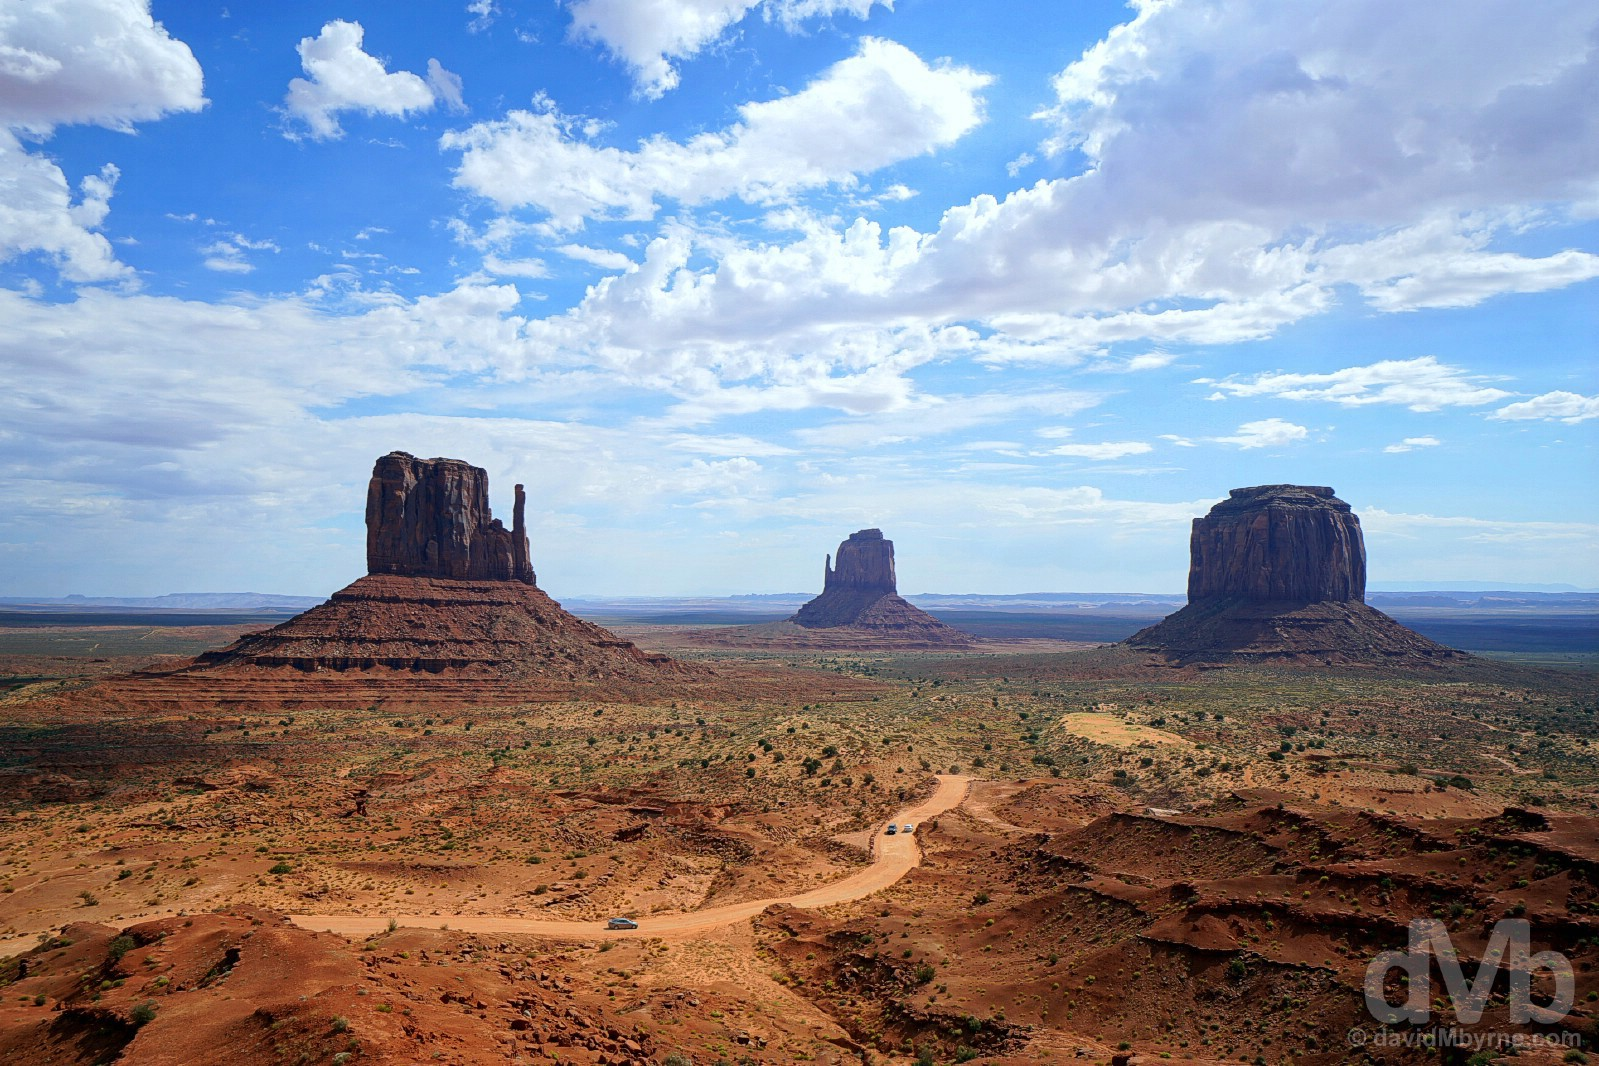 The West Mitten Butte, East Mitten Butte & Merrick Butte of Monument Valley, Navajo Nation, Arizona. September 11, 2016.